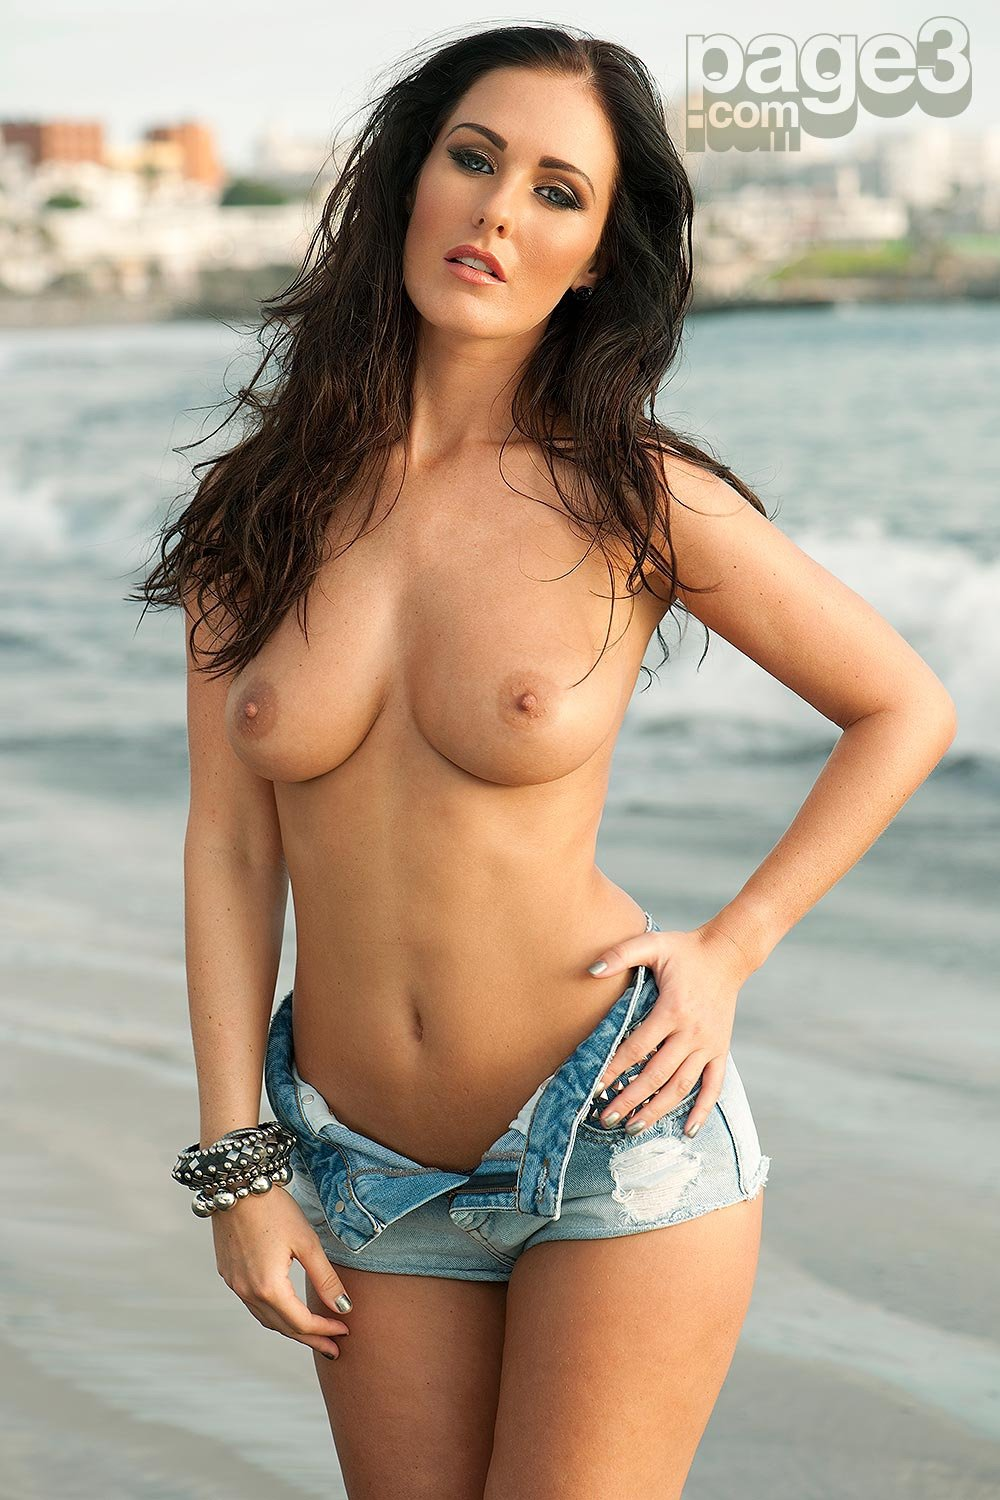 Amii Grove Nude Pics amii grove nude pictures. rating = 9.38/10